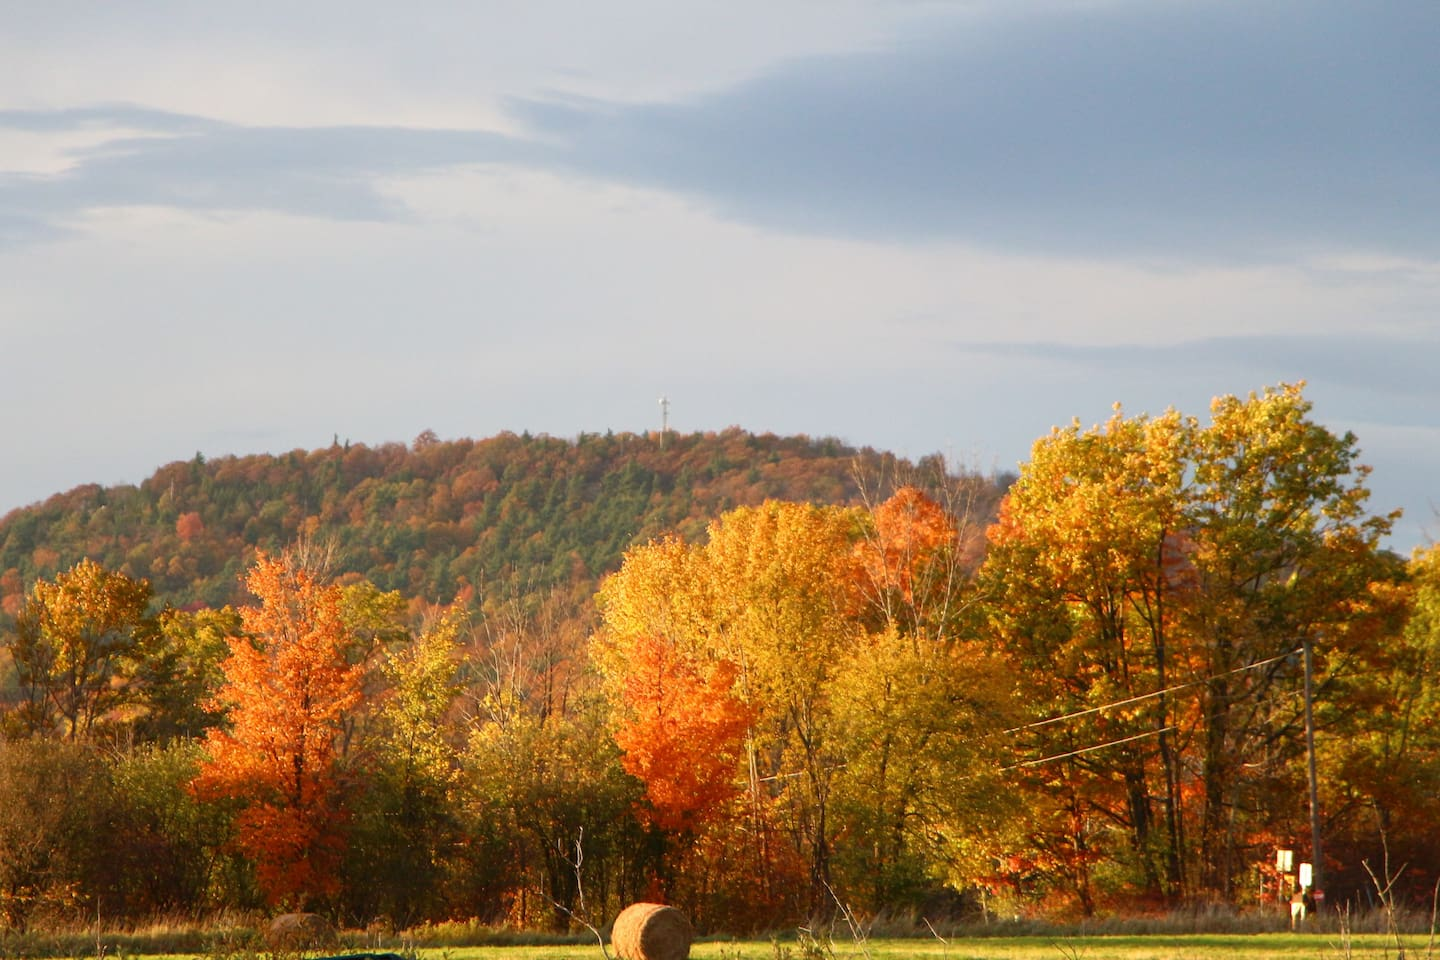 The view from our garden in the fall.